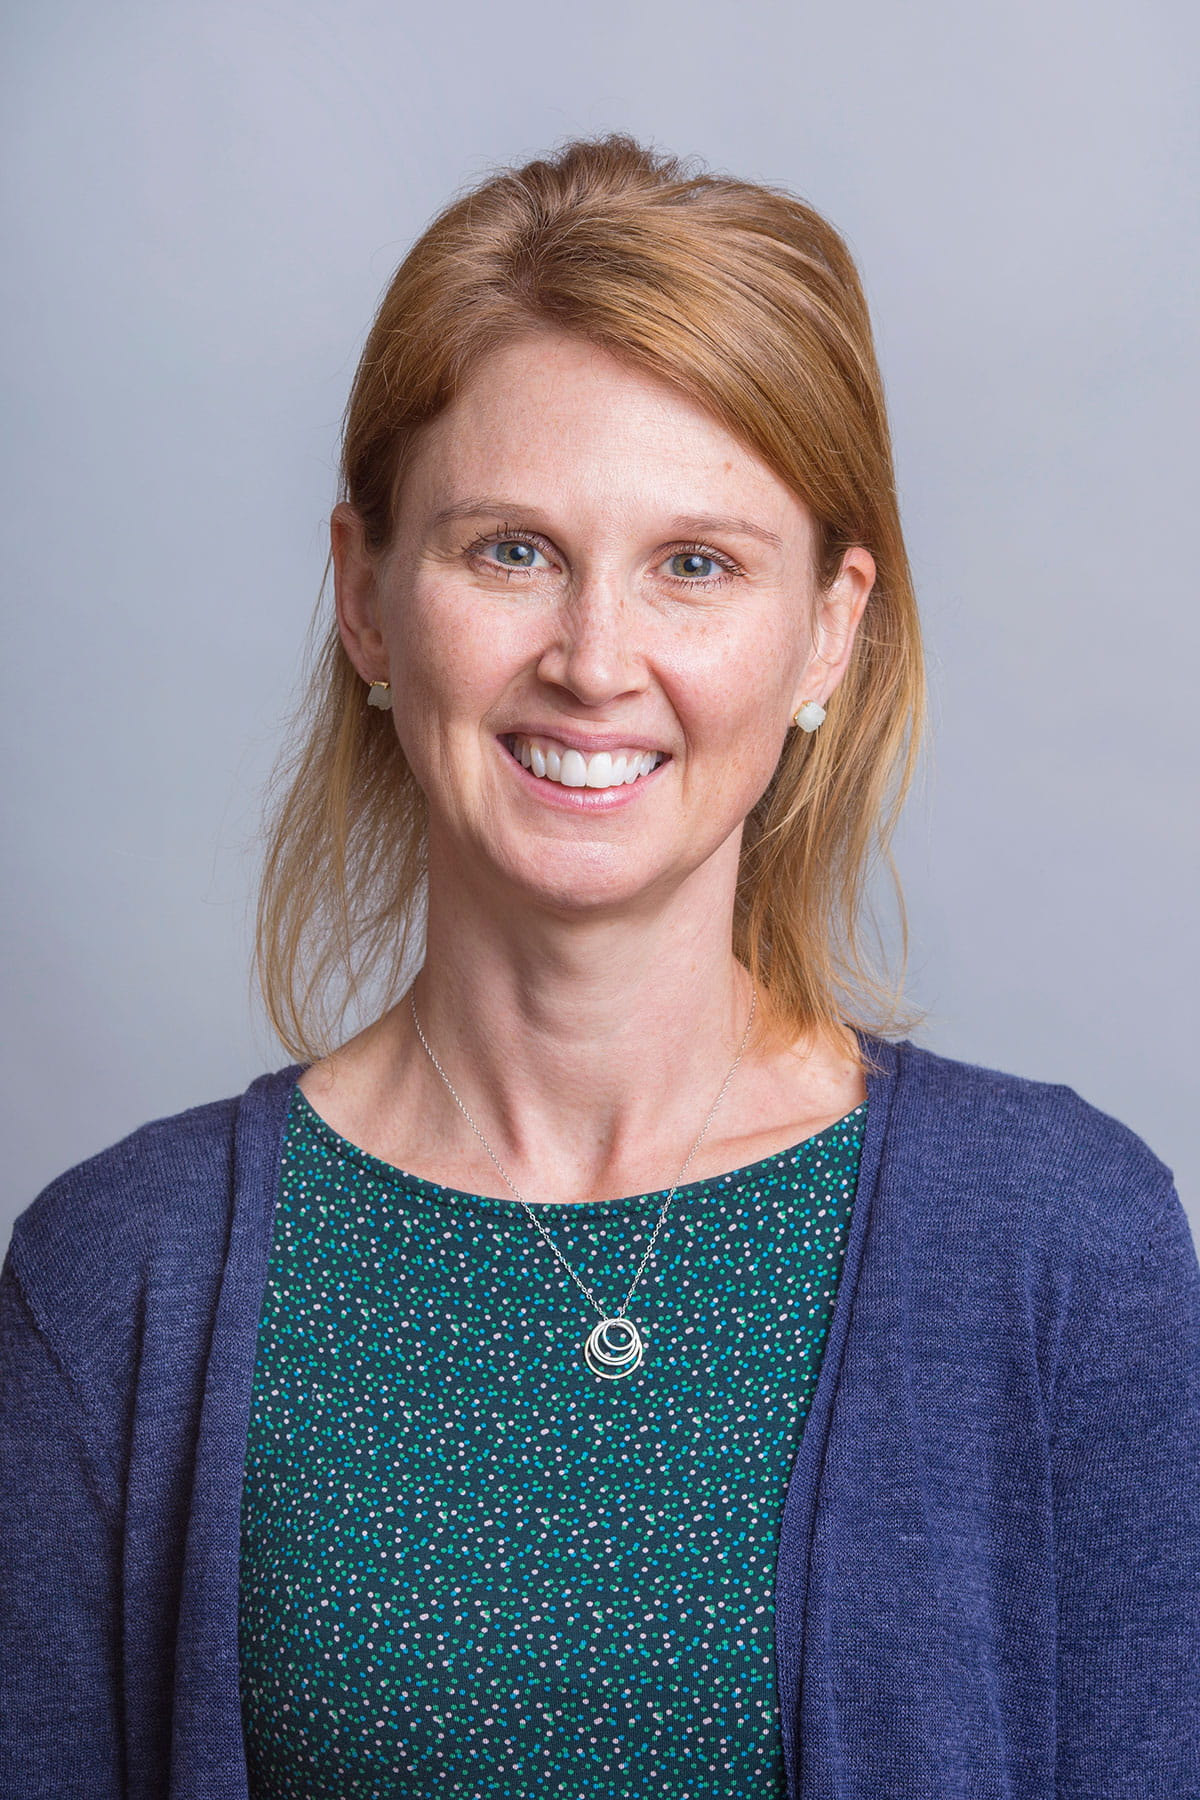 A photo of Amie Duncan.